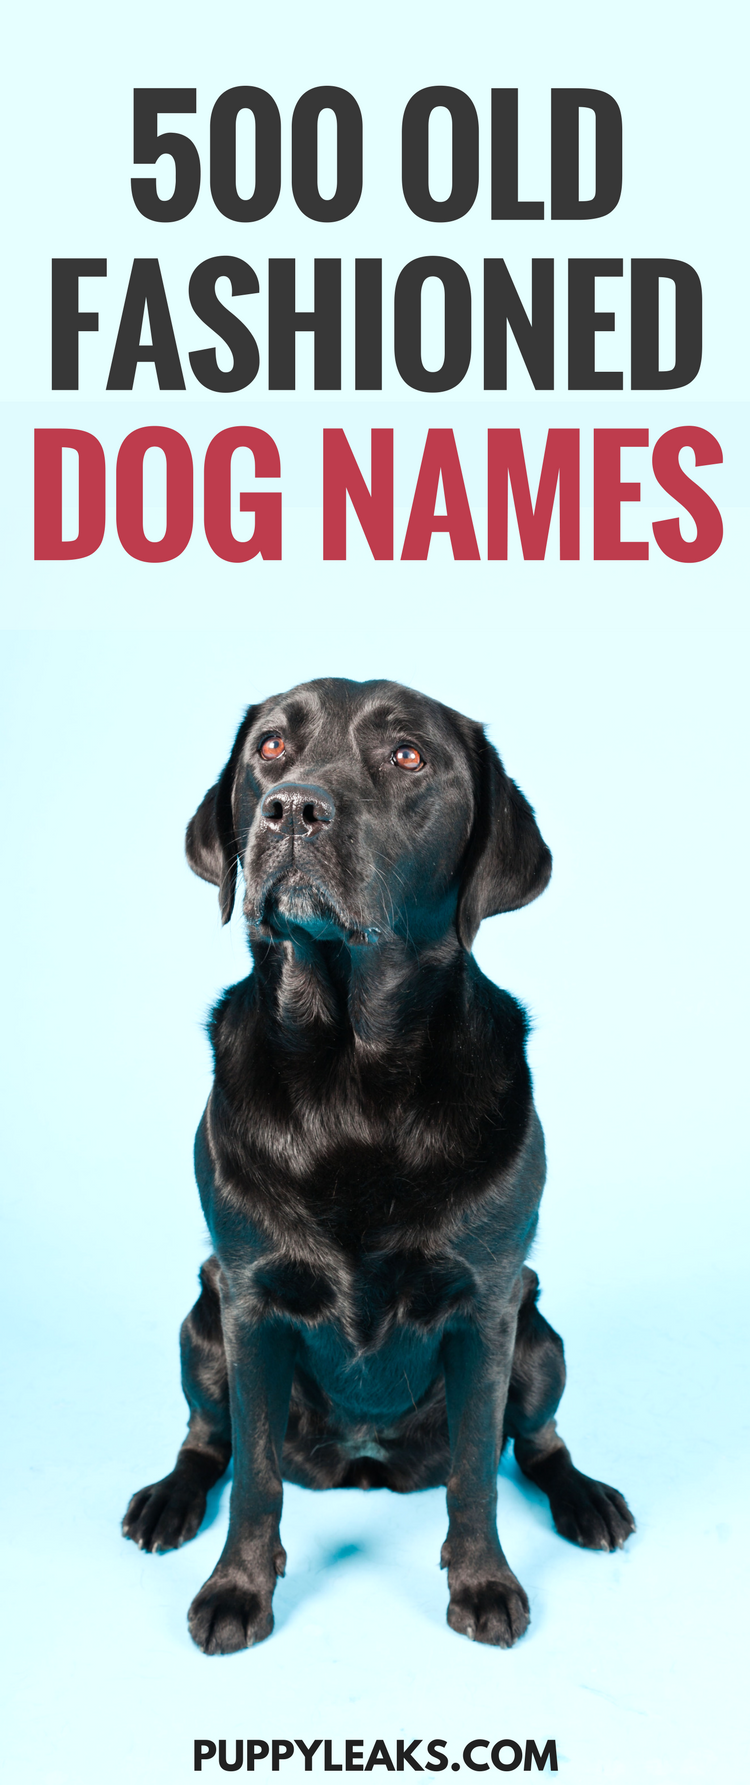 500 Old Fashioned Dog Names - Puppy Leaks